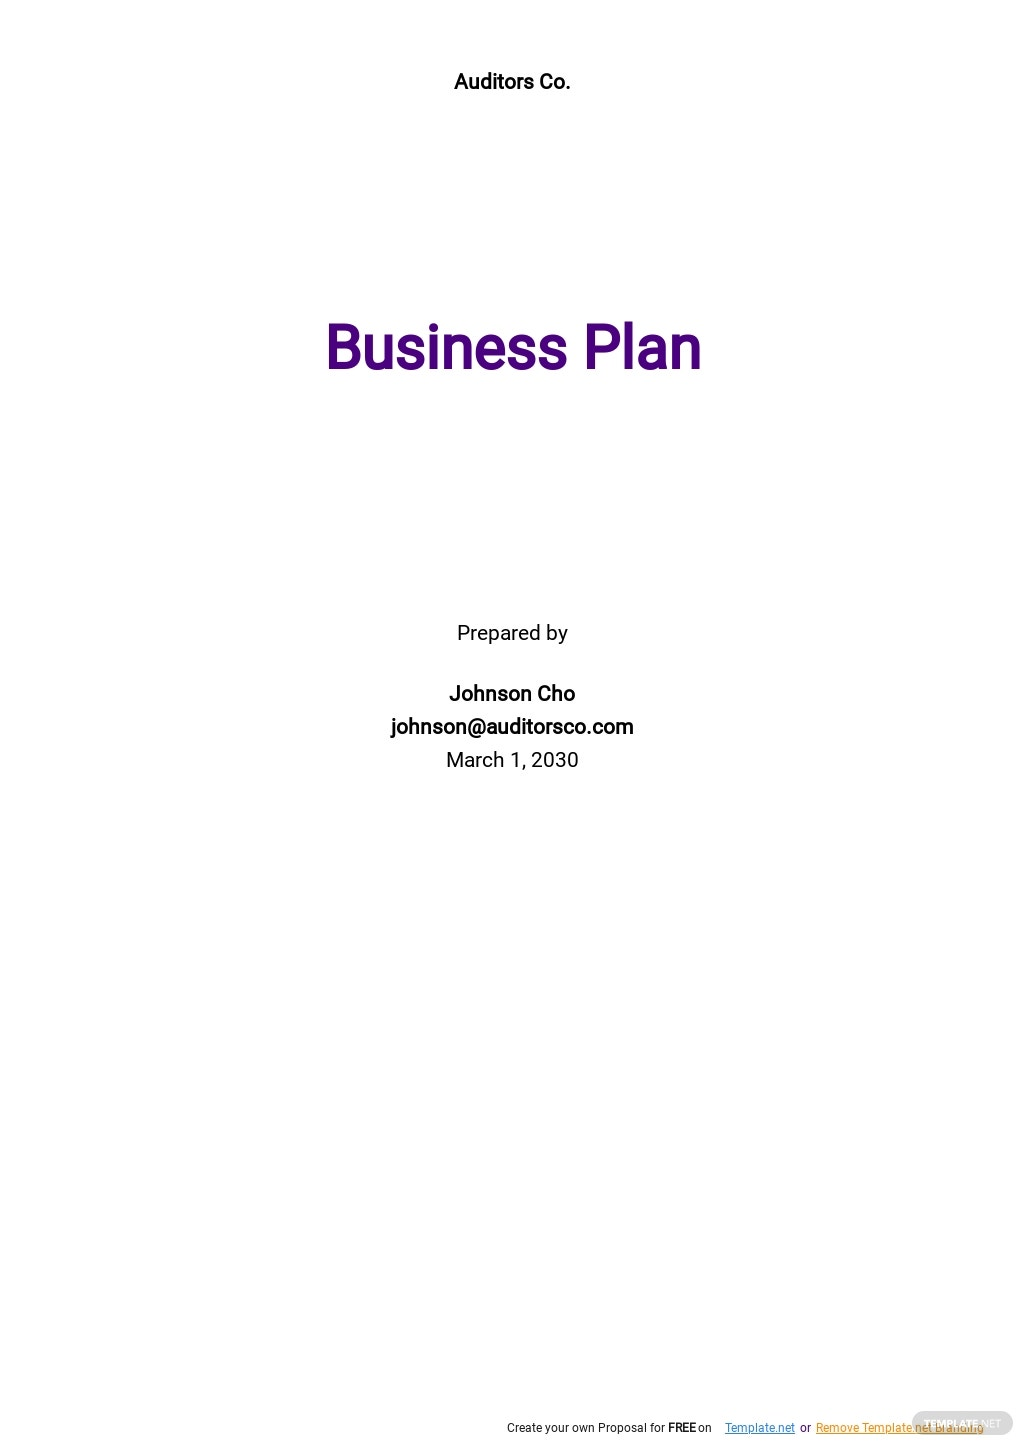 Auditing and Consulting Business Plan Template.jpe